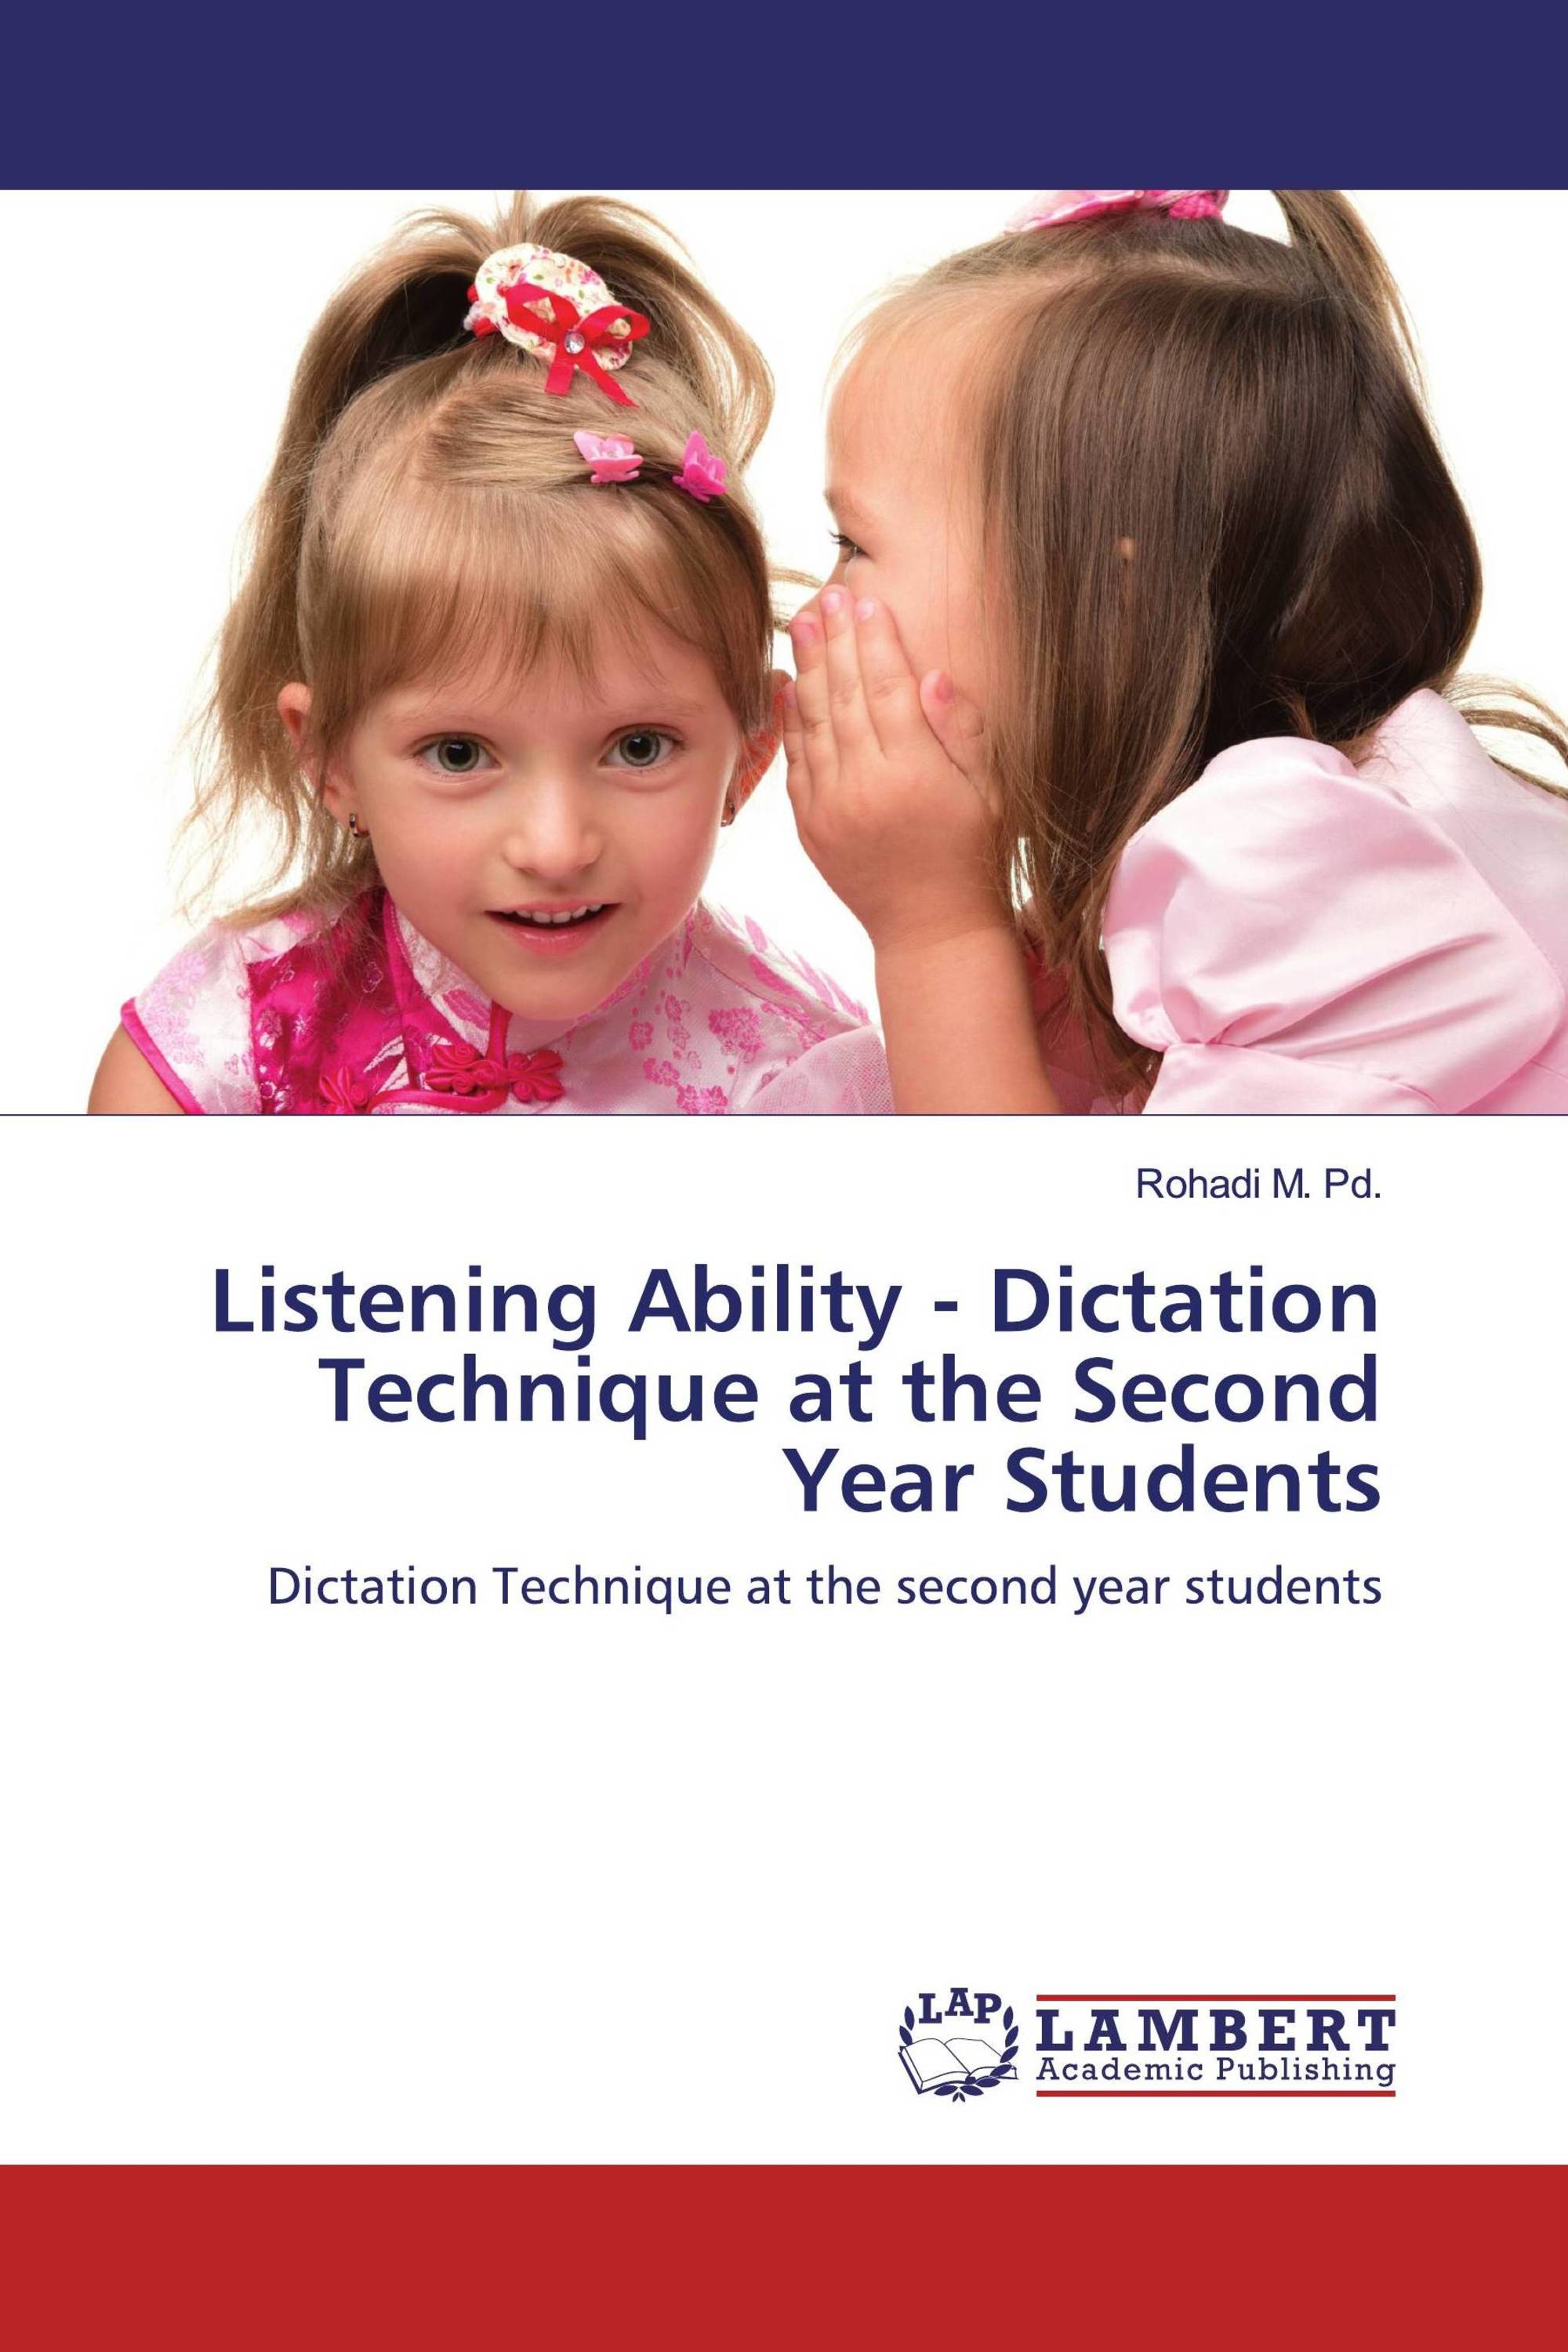 Listening Ability - Dictation Technique at the Second Year Students